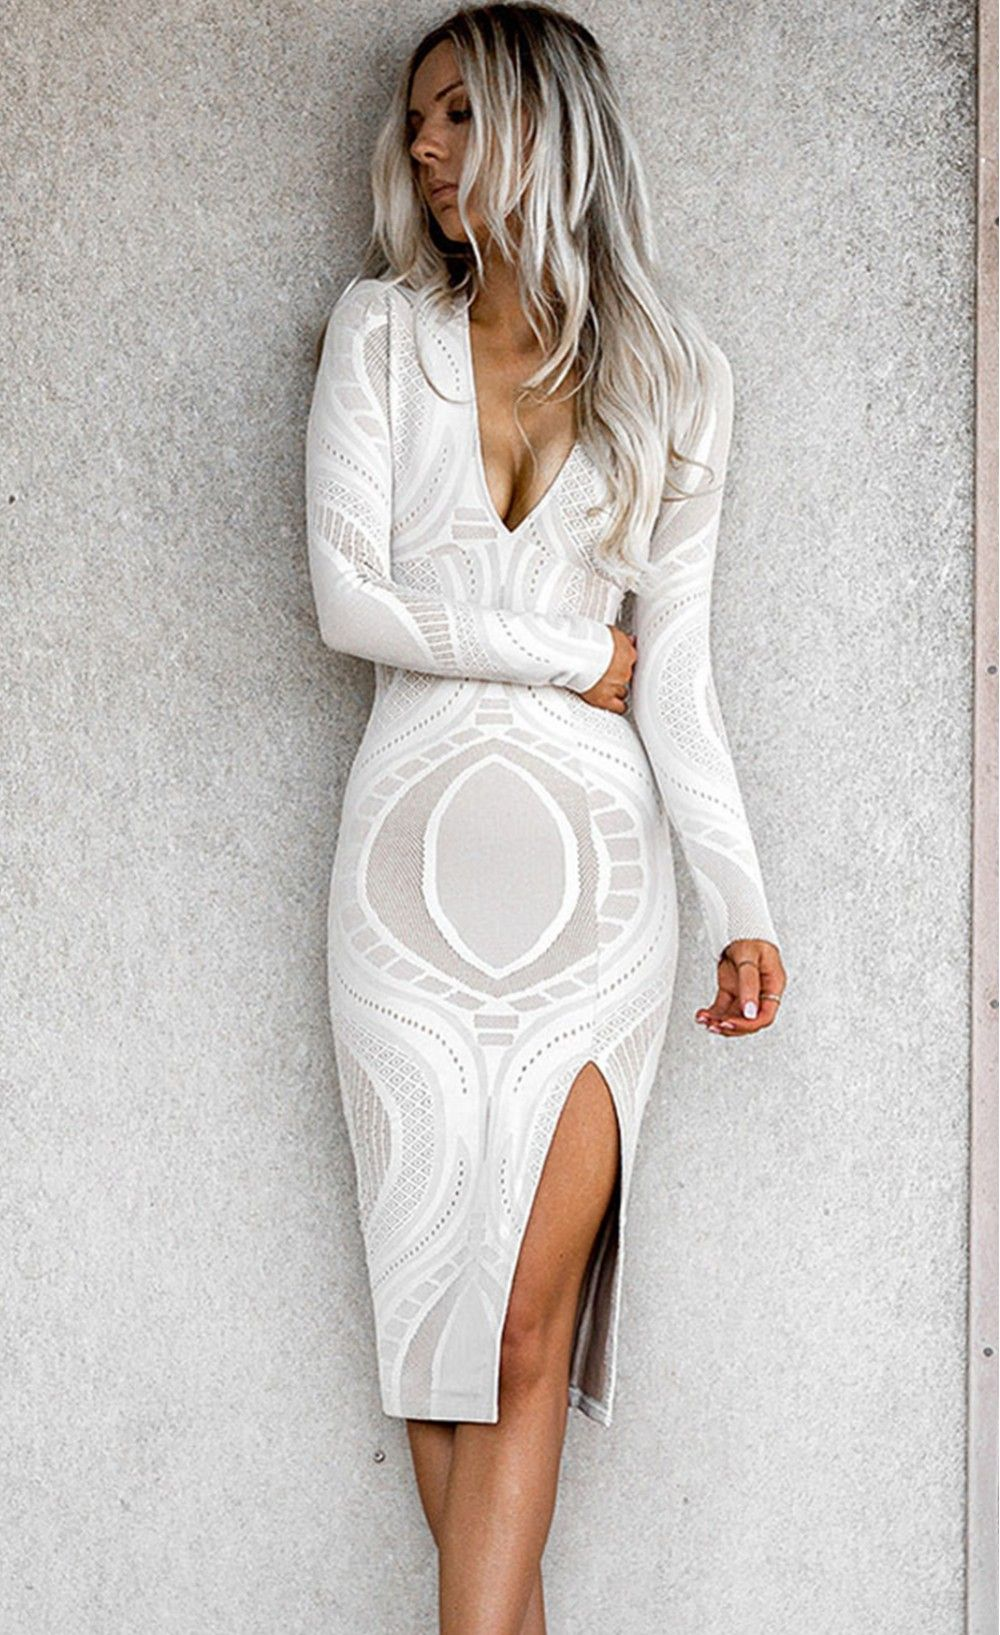 Lace Long Sleeve Deep V Neck Midi Bodycon Dress White Lace Midi Dress Fashion Summer Trends Outfits [ 1635 x 1000 Pixel ]